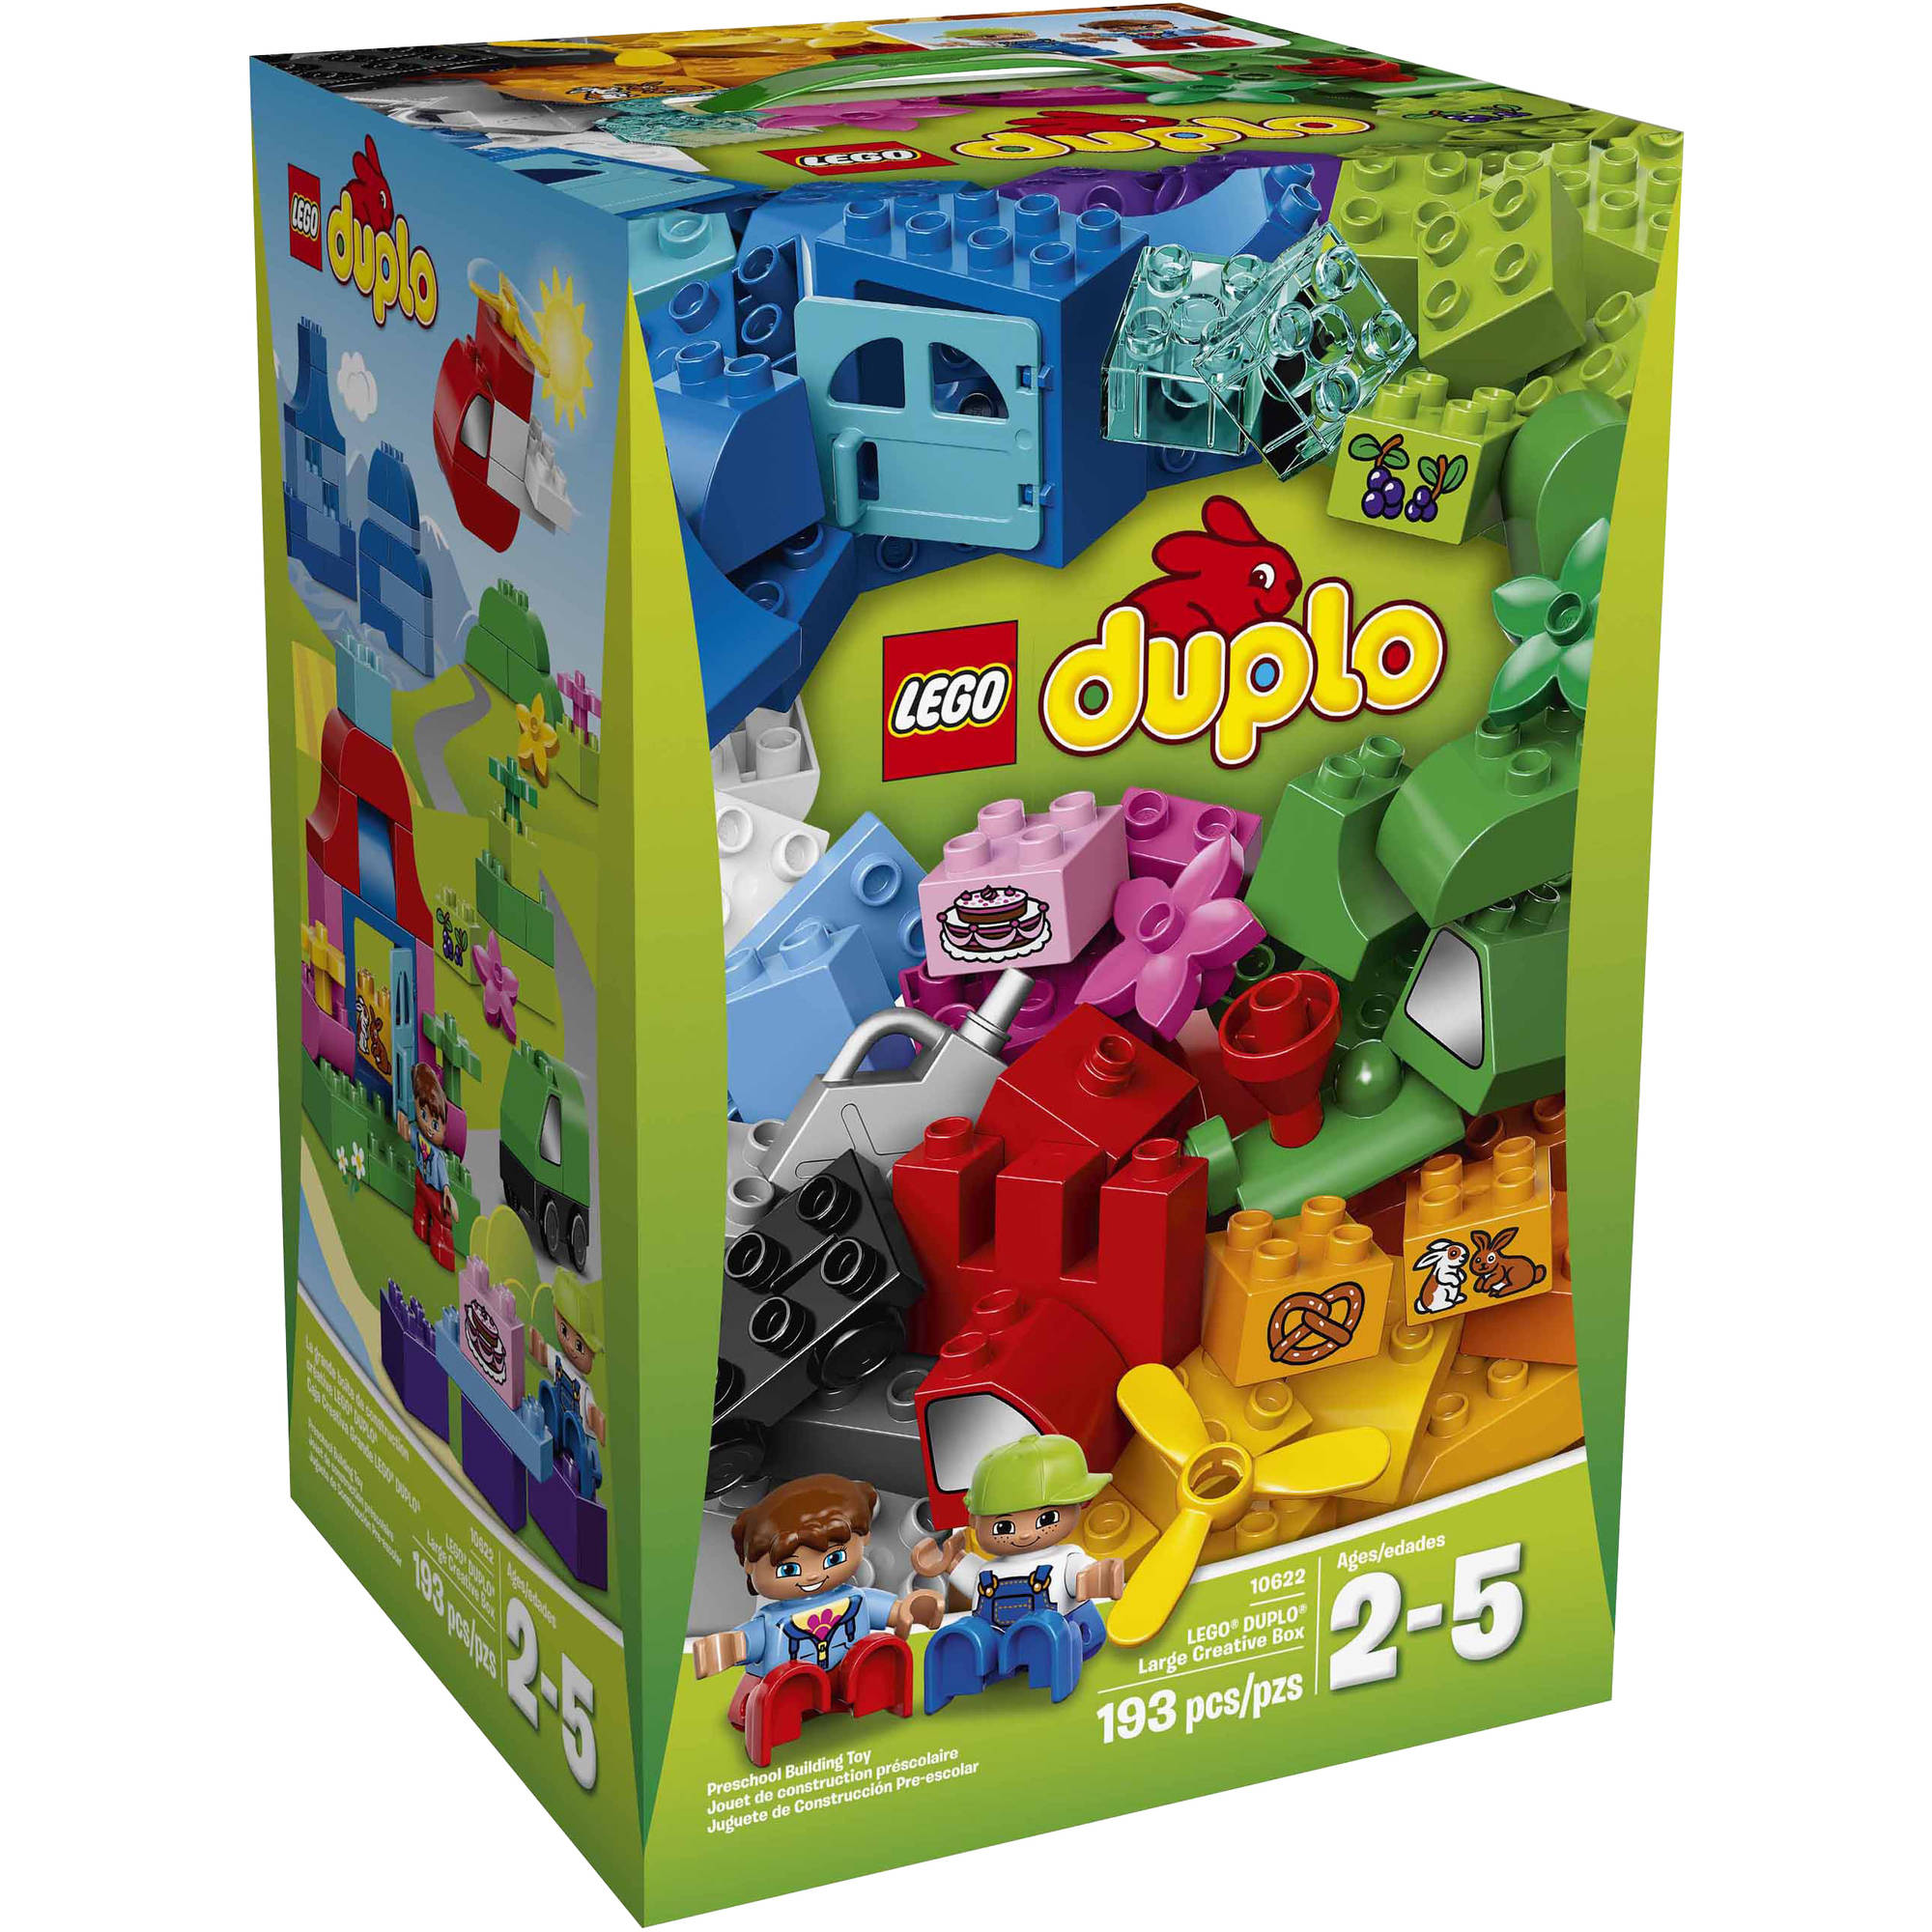 Lego Duplo My First Lego Duplo Large Creative Box